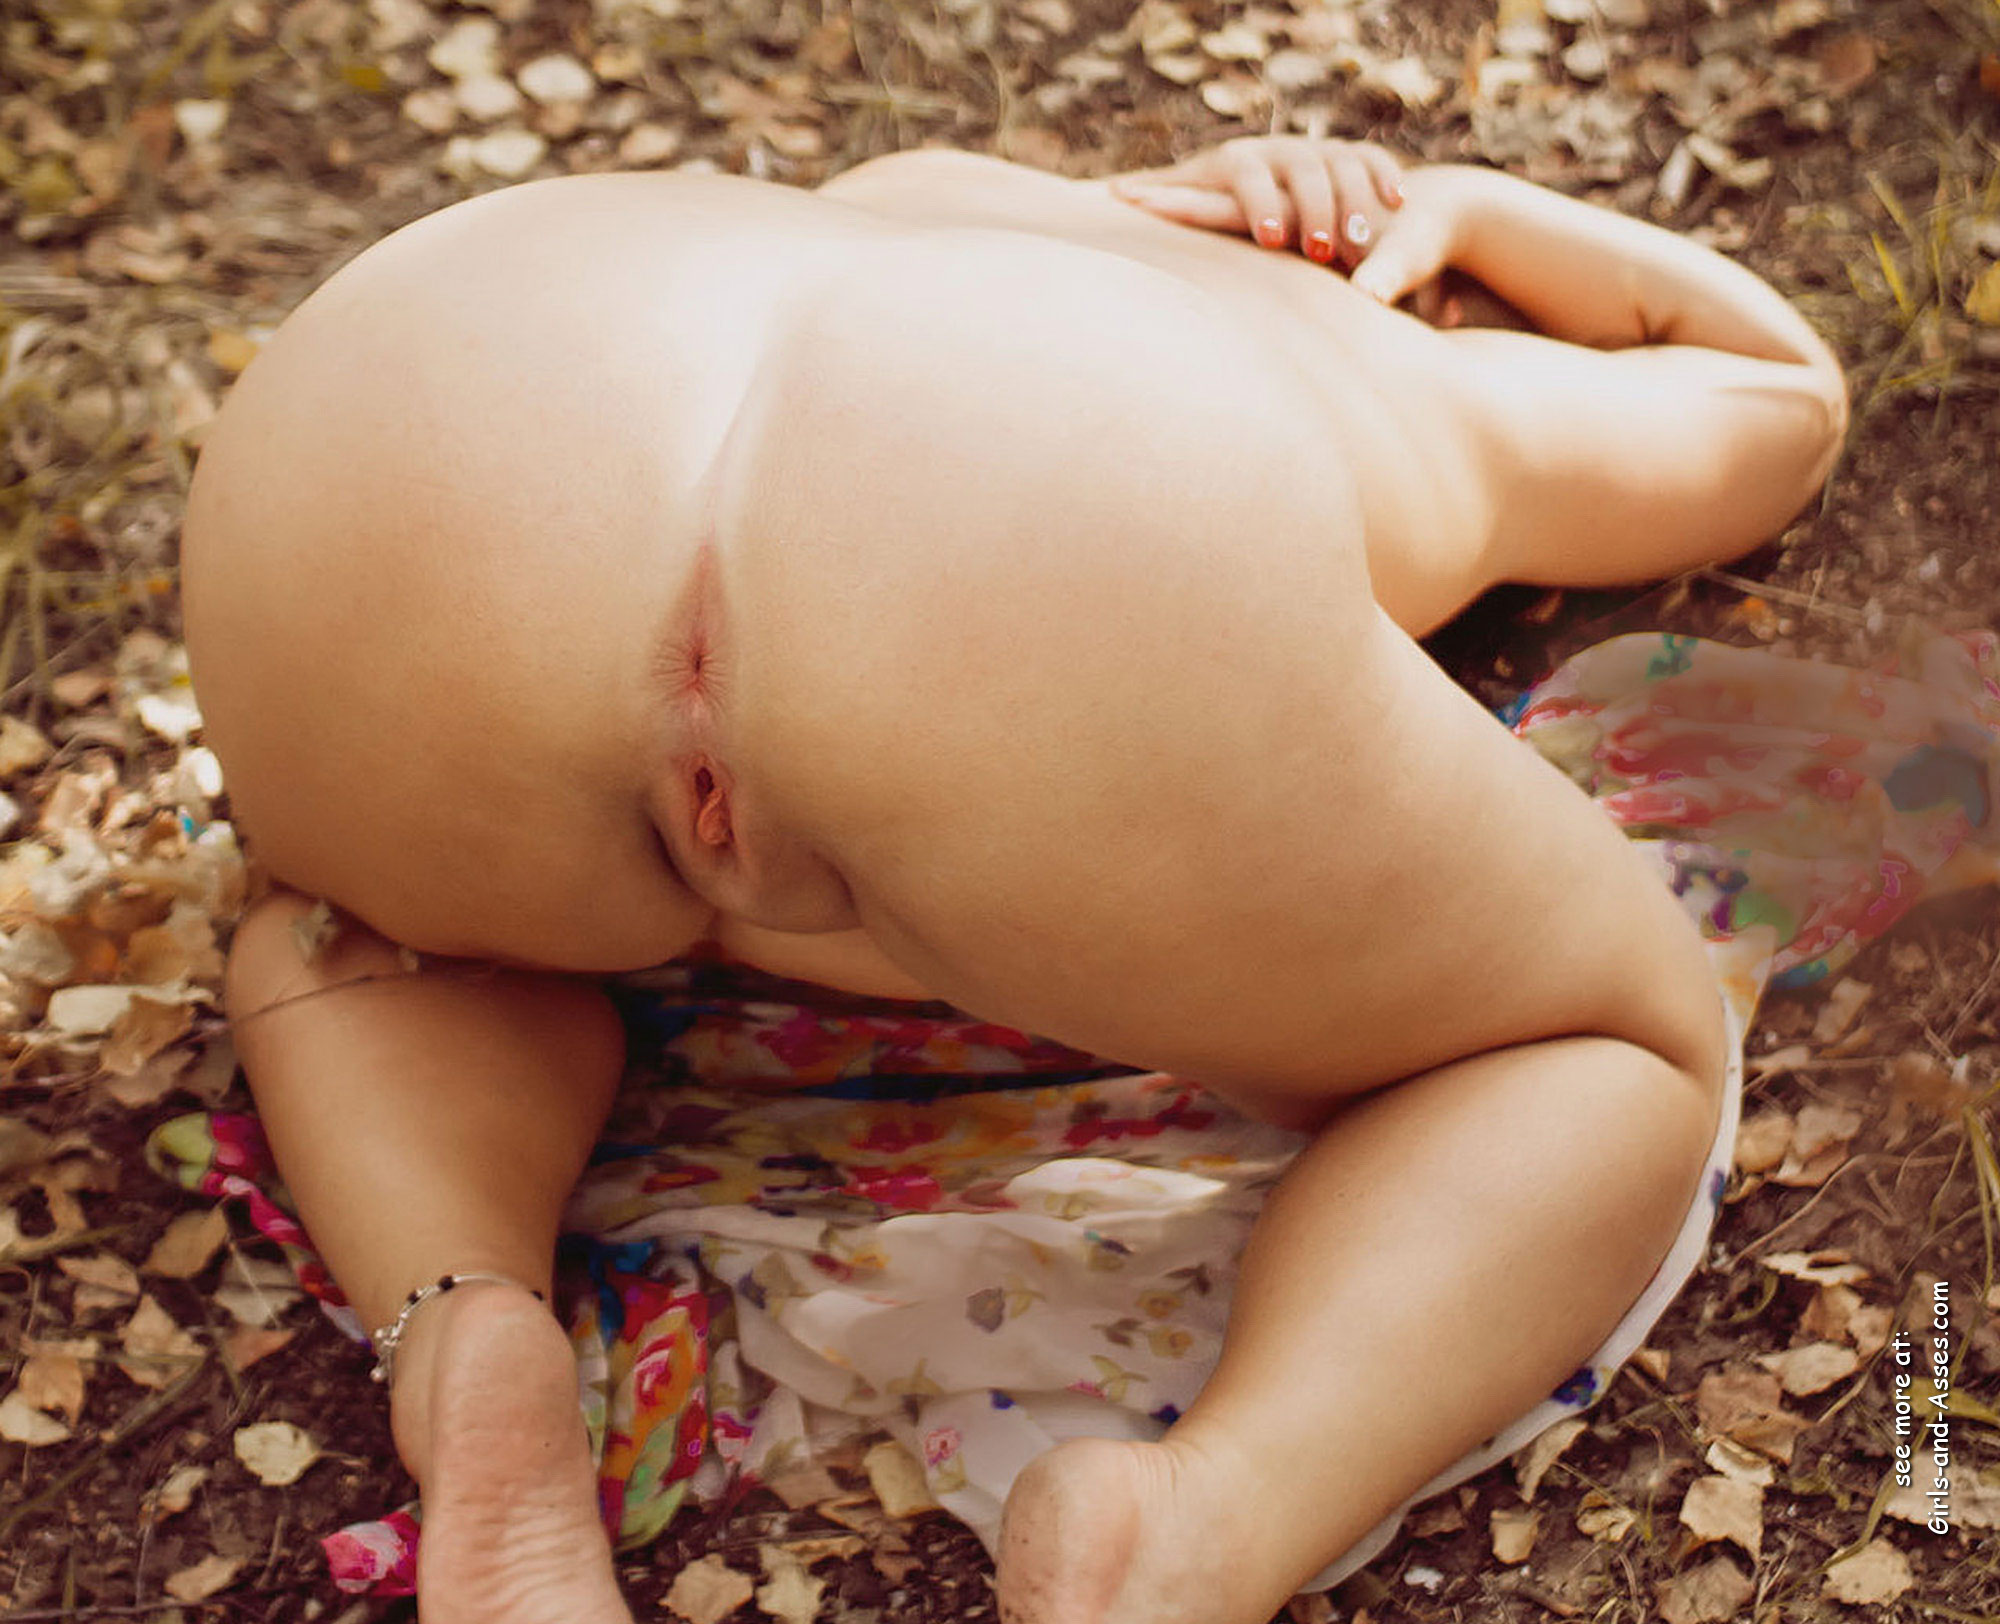 naked girl in doggystyle position in the forest photo 02516